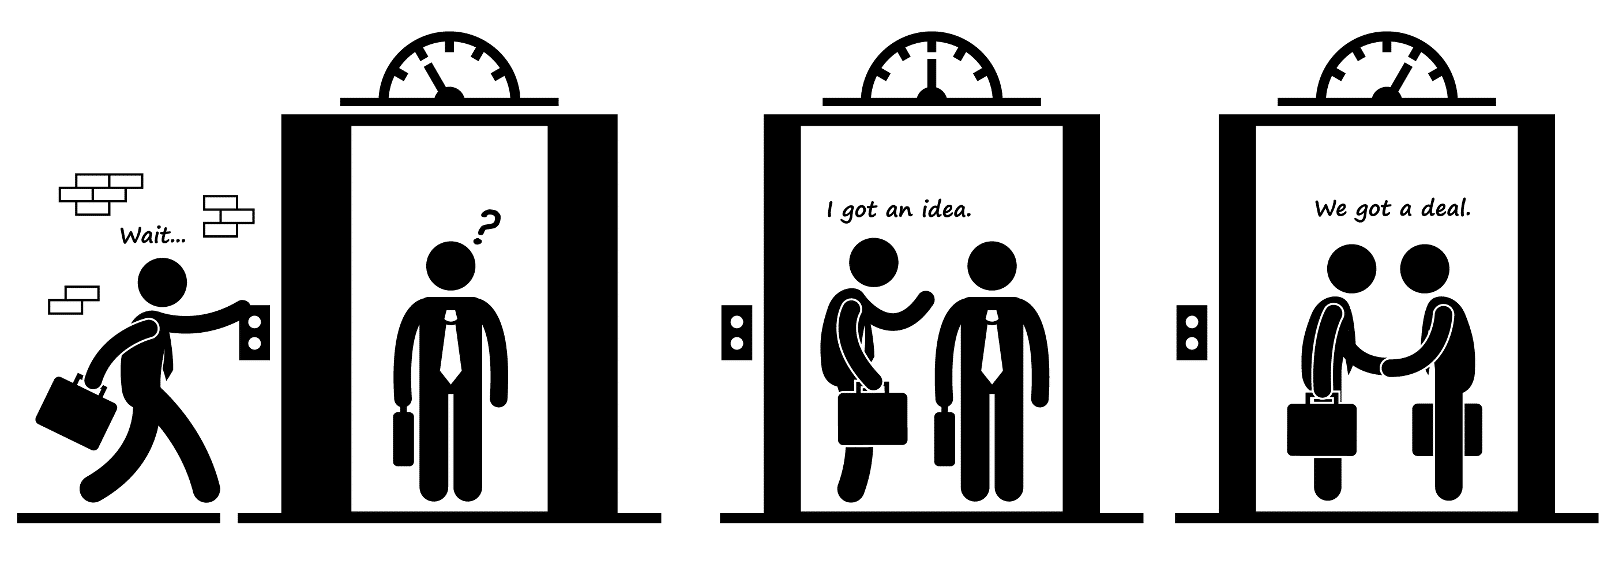 Comment réussir son Elevator Pitch ? 2